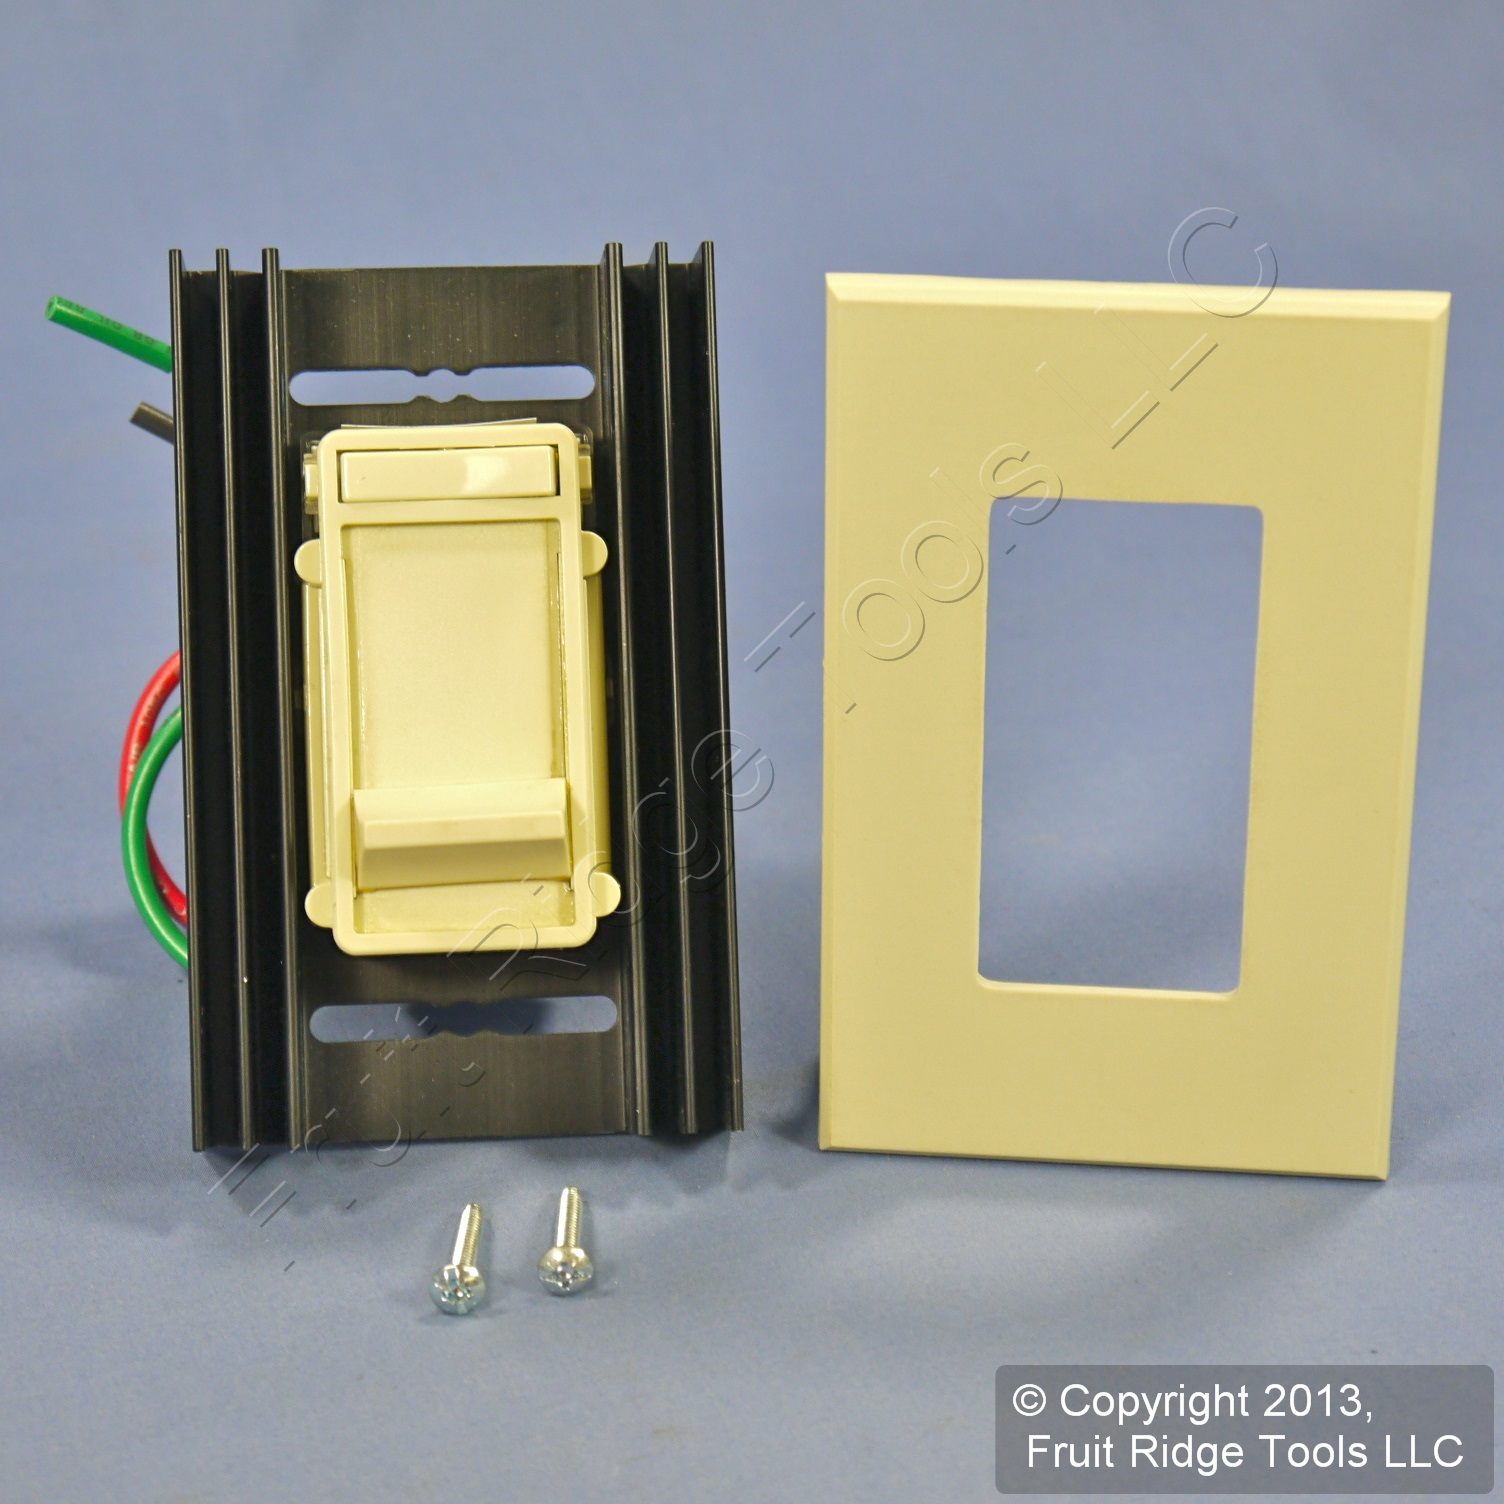 Fluorescent Light Dim: Leviton Fluorescent Ivory Slide Light Dimmer Switch 120V 4